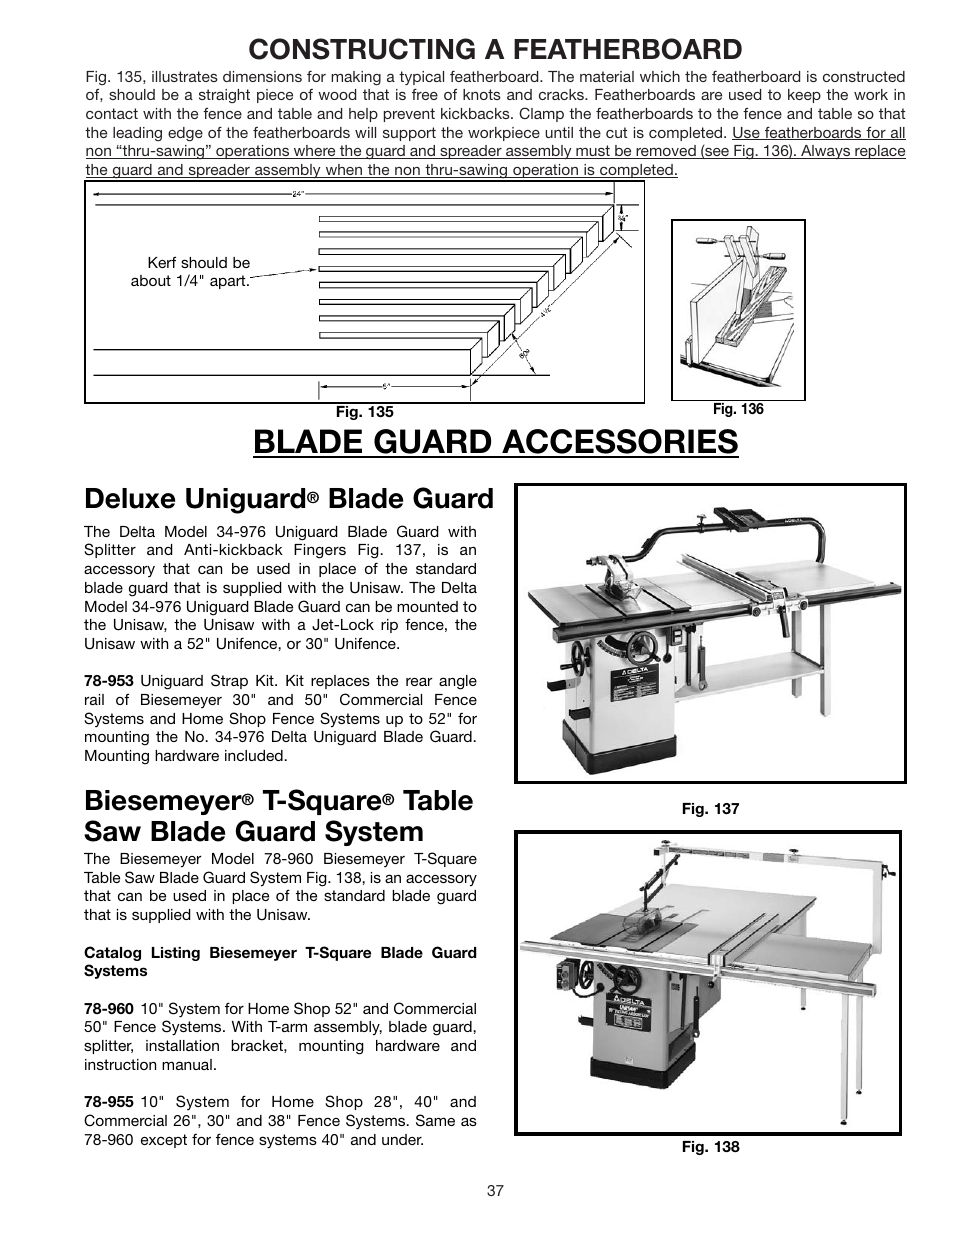 Blade guard accessories constructing a featherboard deluxe blade guard accessories constructing a featherboard deluxe uniguard delta 36 841 user manual page 37 40 keyboard keysfo Images